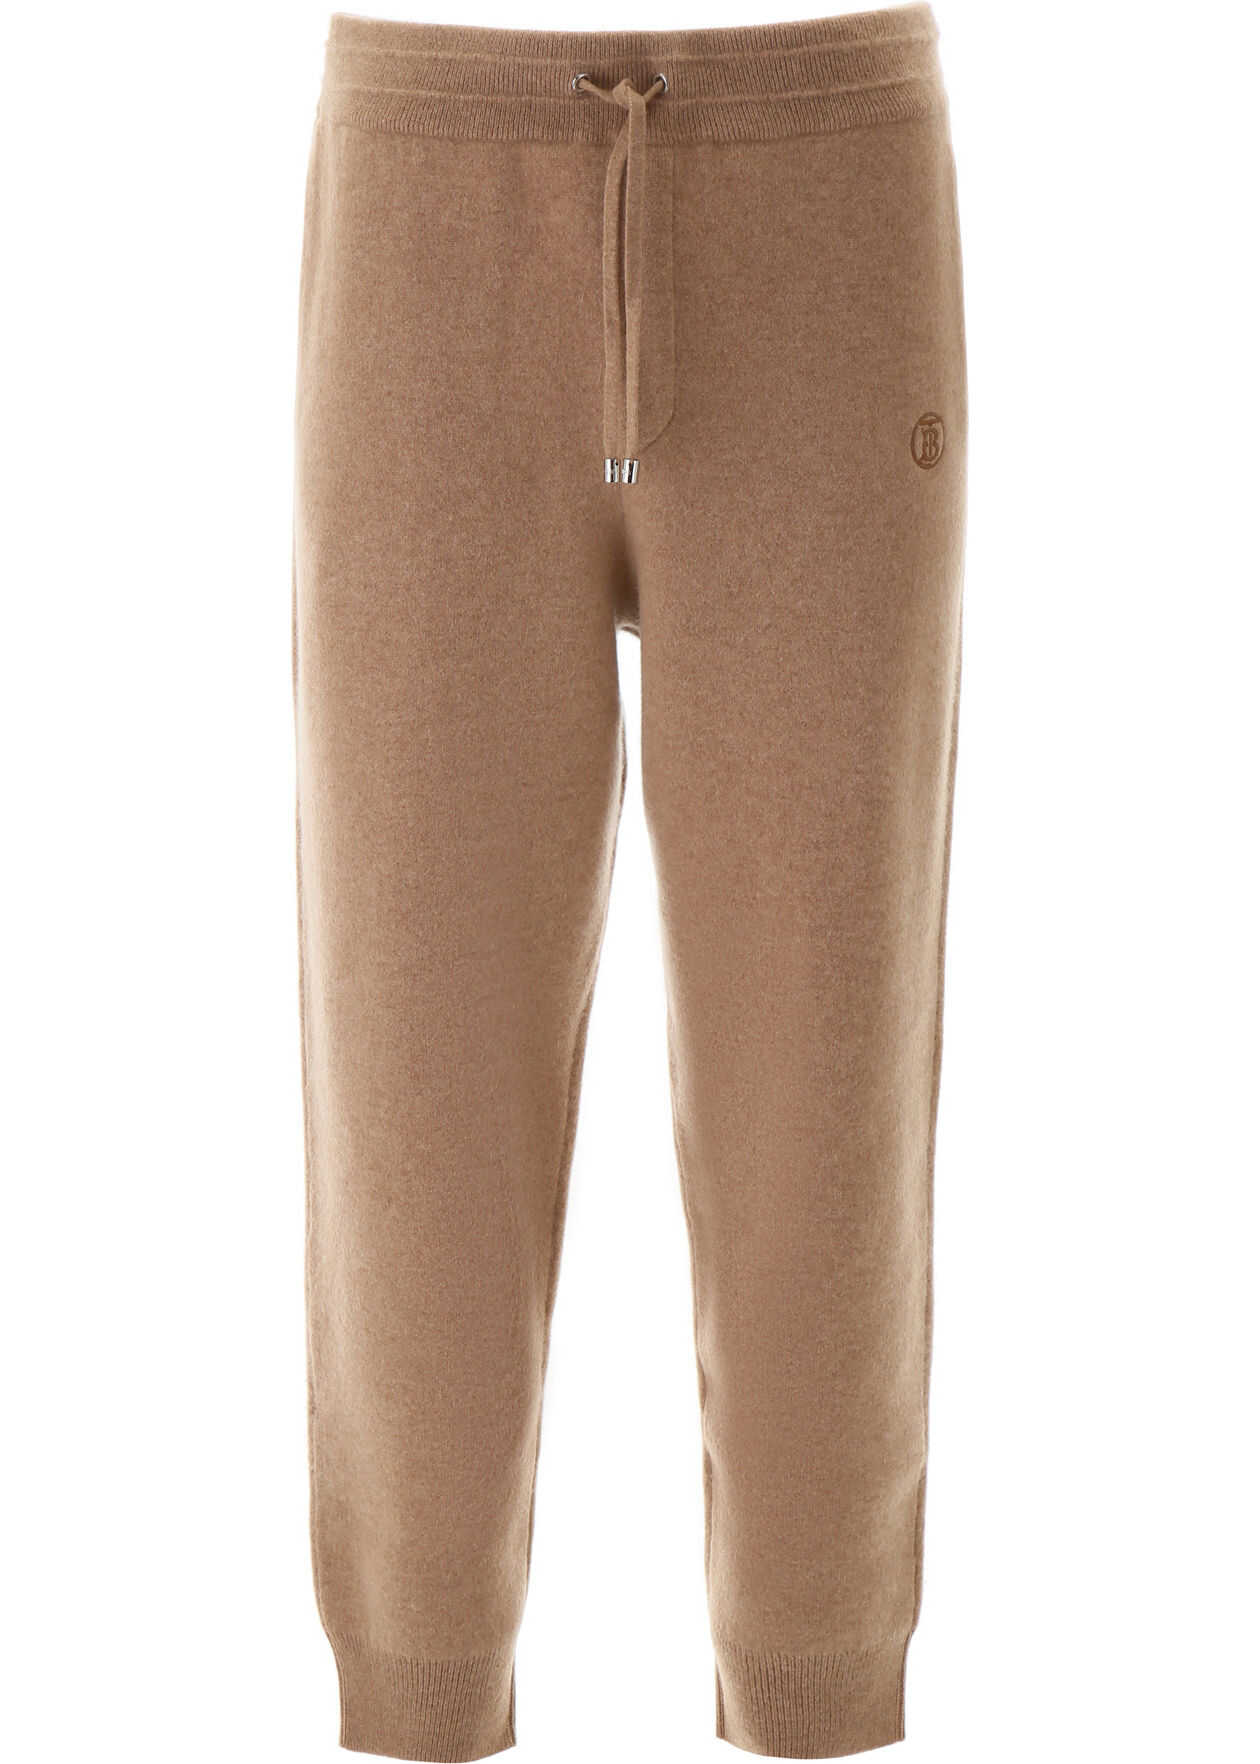 Burberry Cashmere Joggers PALE COFFEE